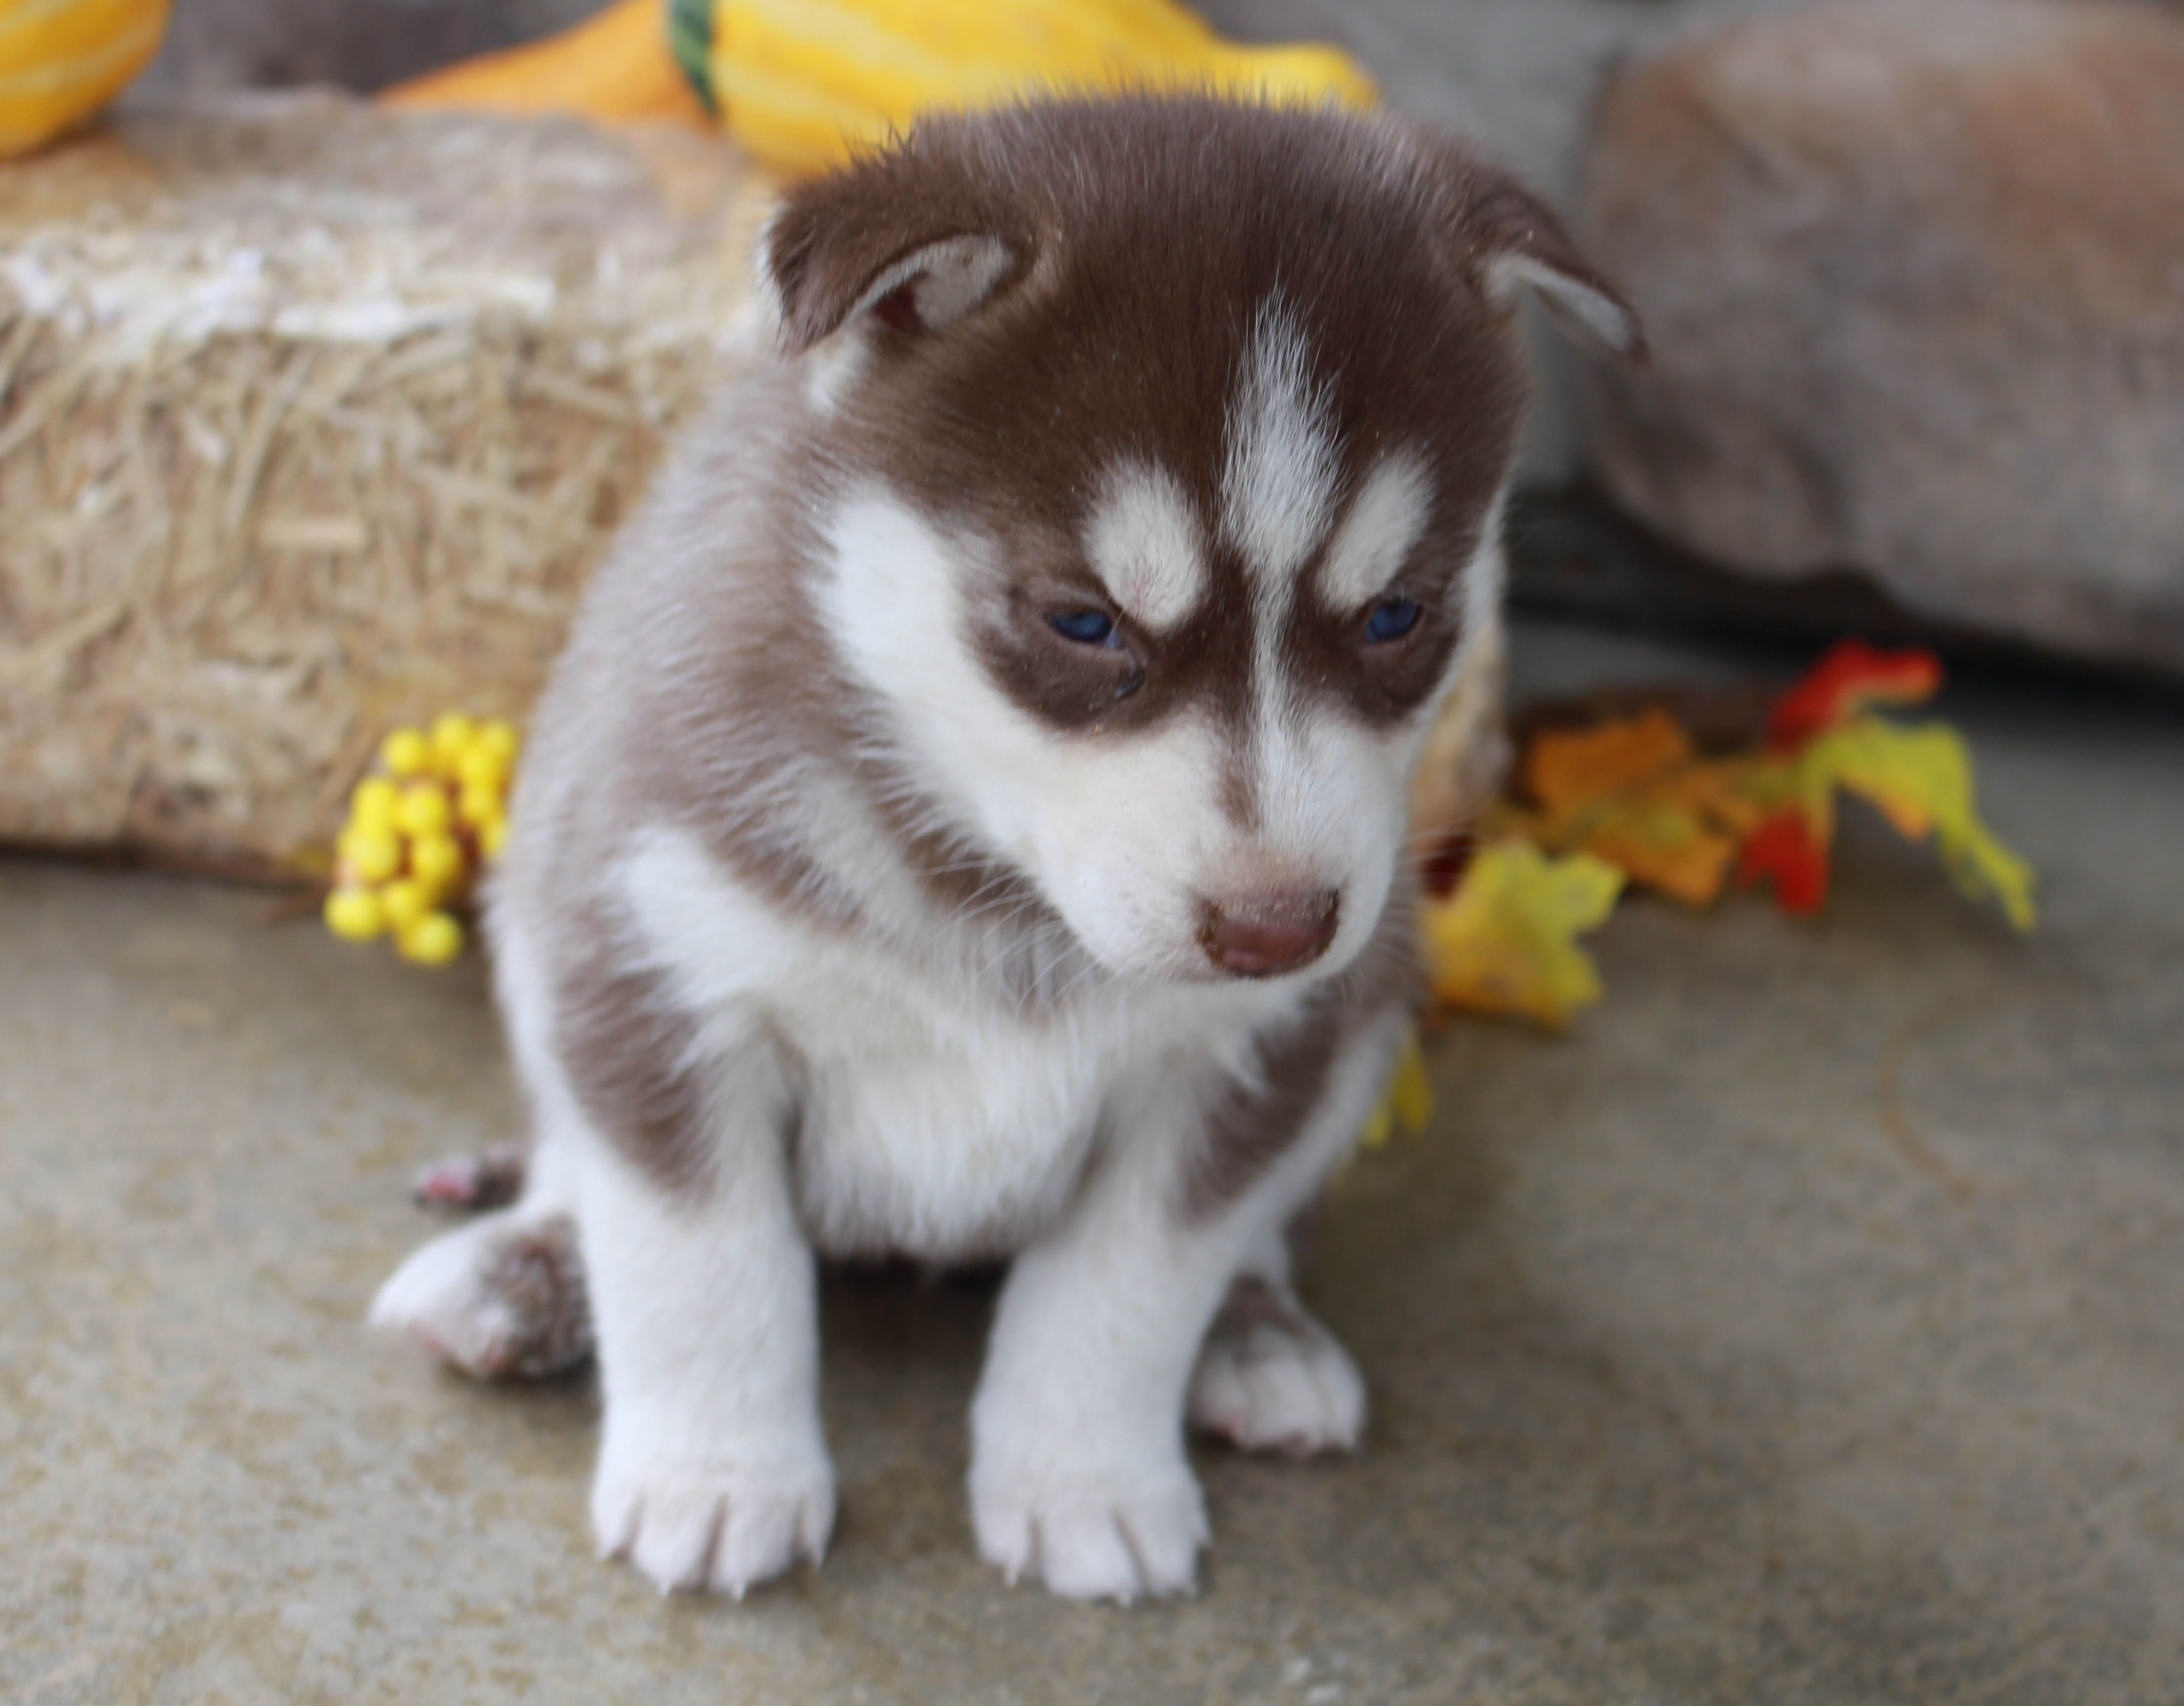 Pin By Vip Puppies Animals Dogs On Puppies For Sale Puppies Puppy Adoption Husky Puppies For Sale